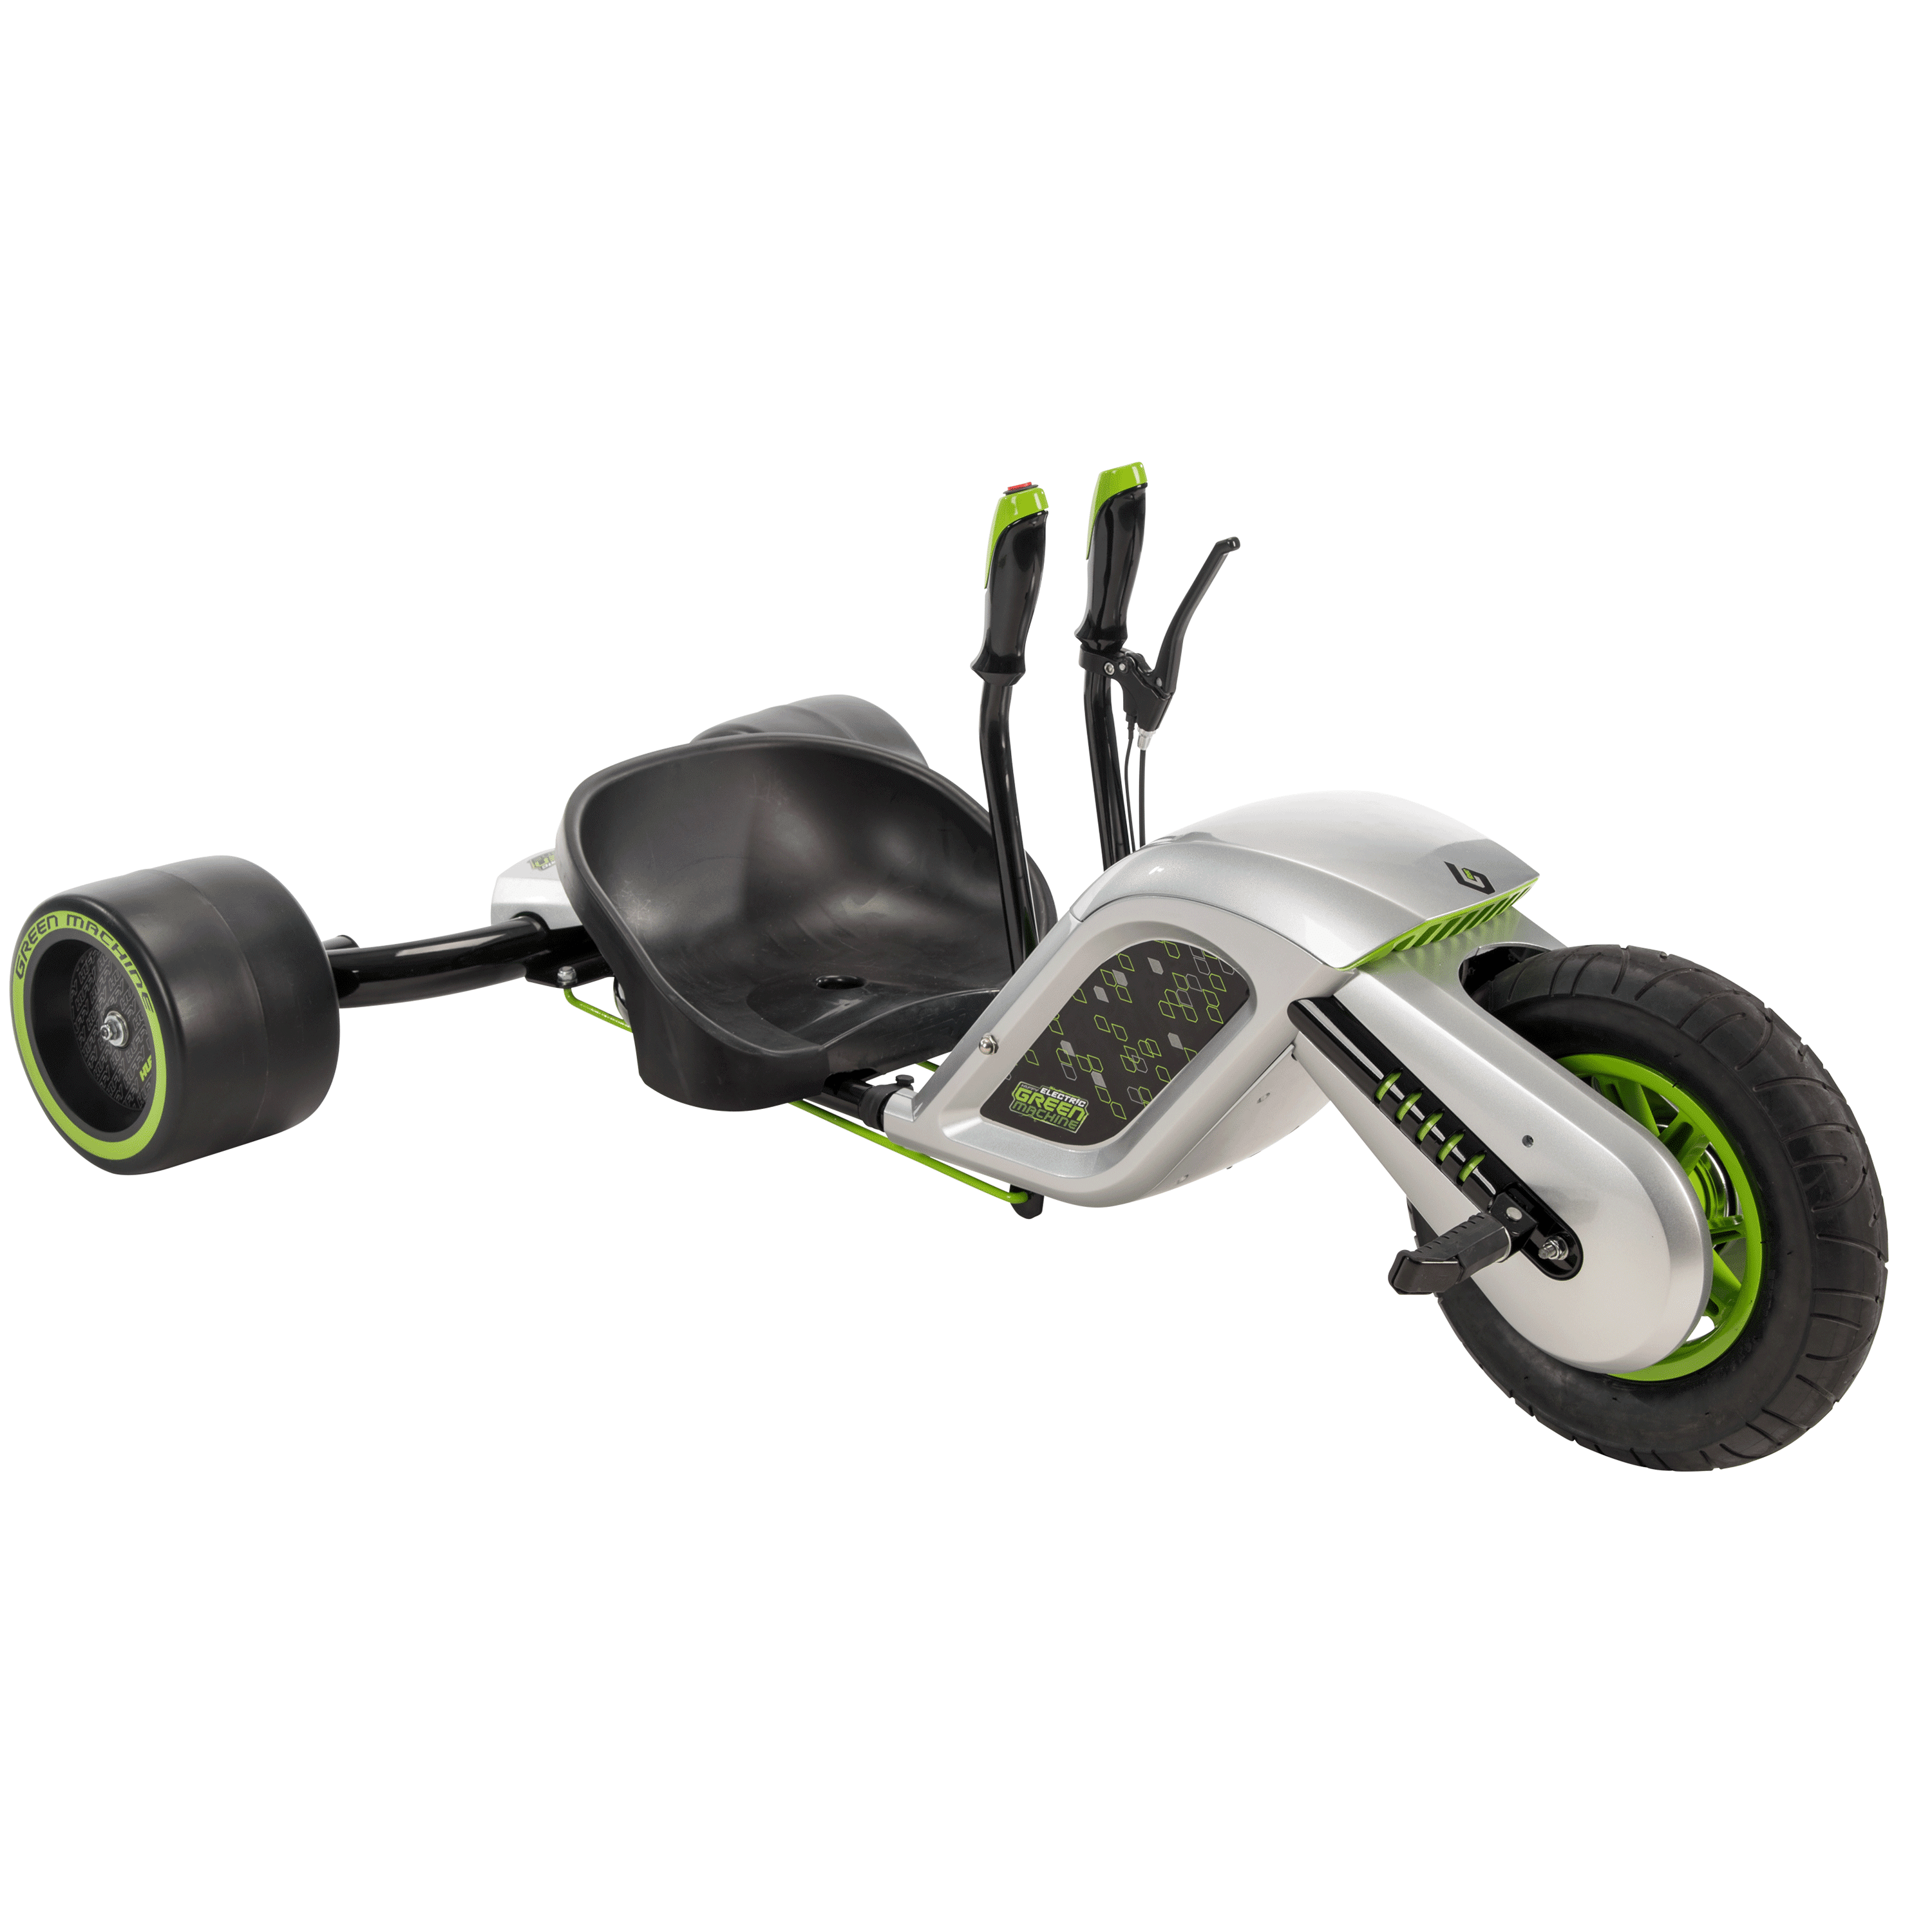 Huffy Electric Green Machine 24 Volt Battery Powered Ride On Trike Wiring Diagram 12 Toys